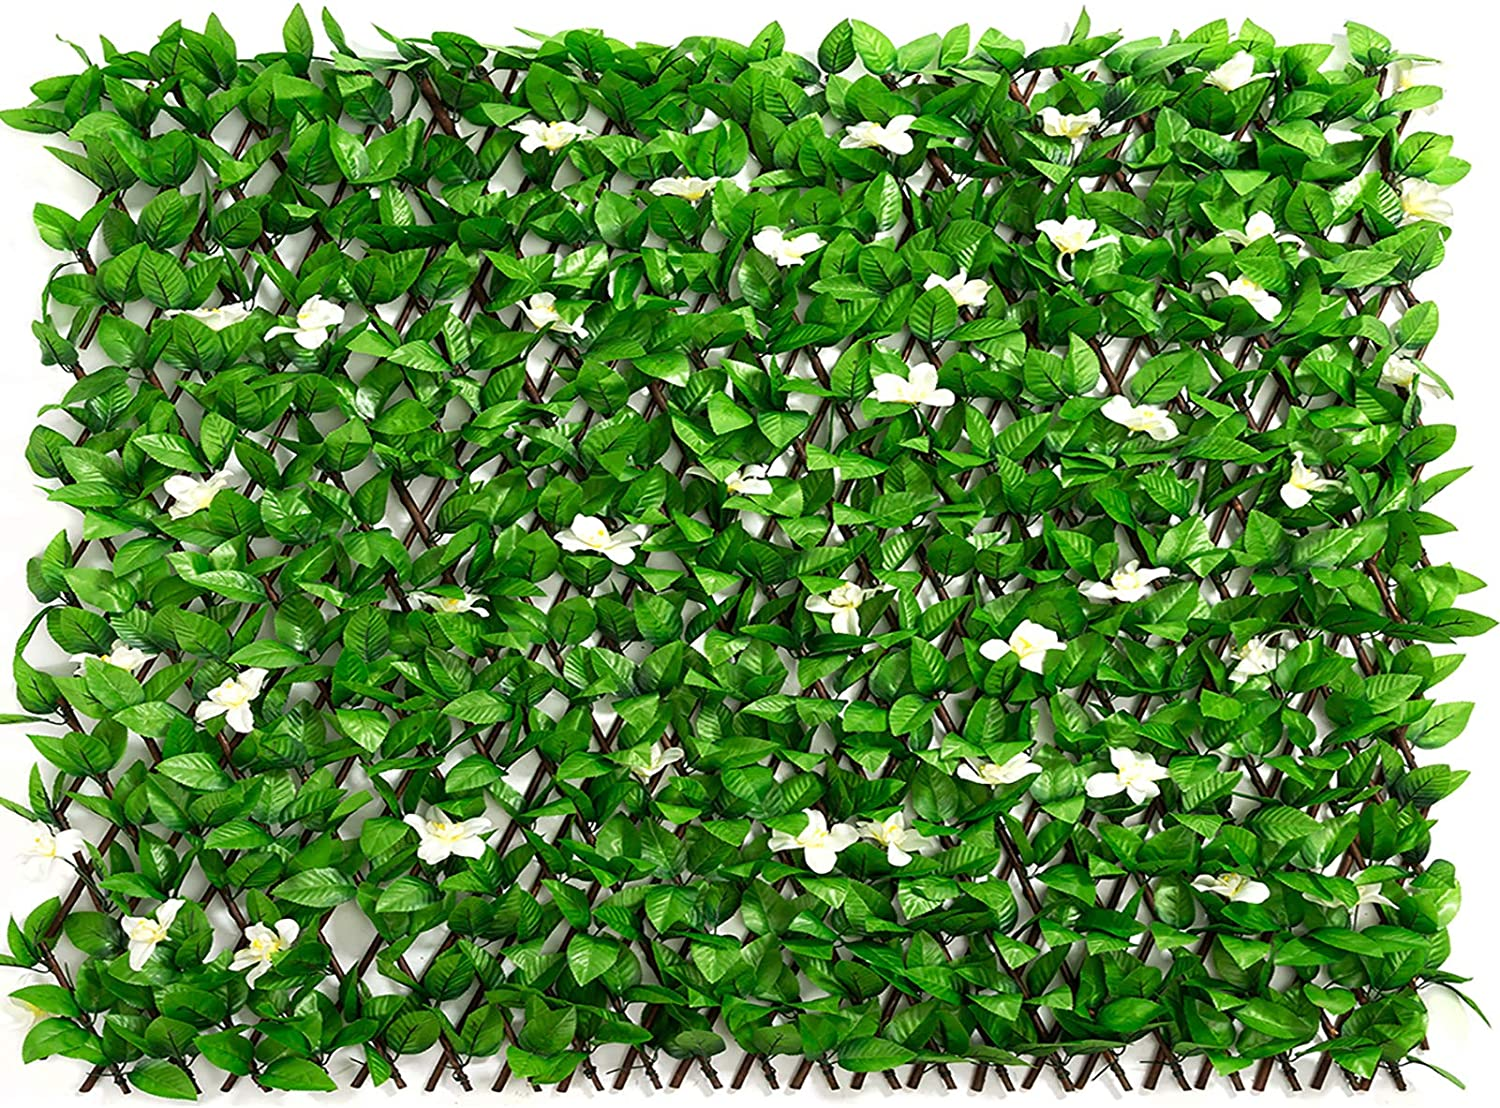 DOEWORKS Expandable Fence Privacy Screen for Balcony Patio Outdoor, Faux Ivy Fencing Panel for Backdrop Garden Backyard Home Decorations - 1PACK